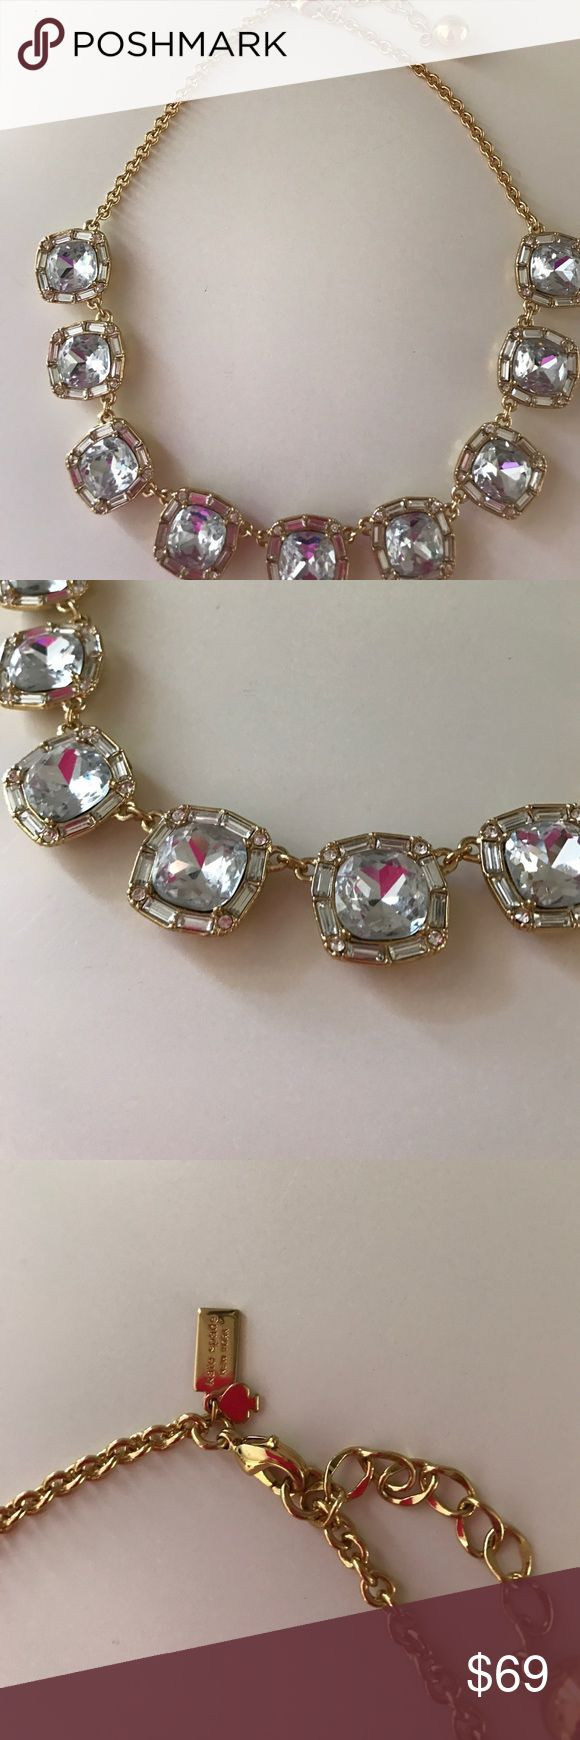 Kate Spade Super Sparkly Crystal Necklace Worn once for work and in excellent condition! No tarnishing, all gems secured and gorgeous! kate spade Jewelry Necklaces